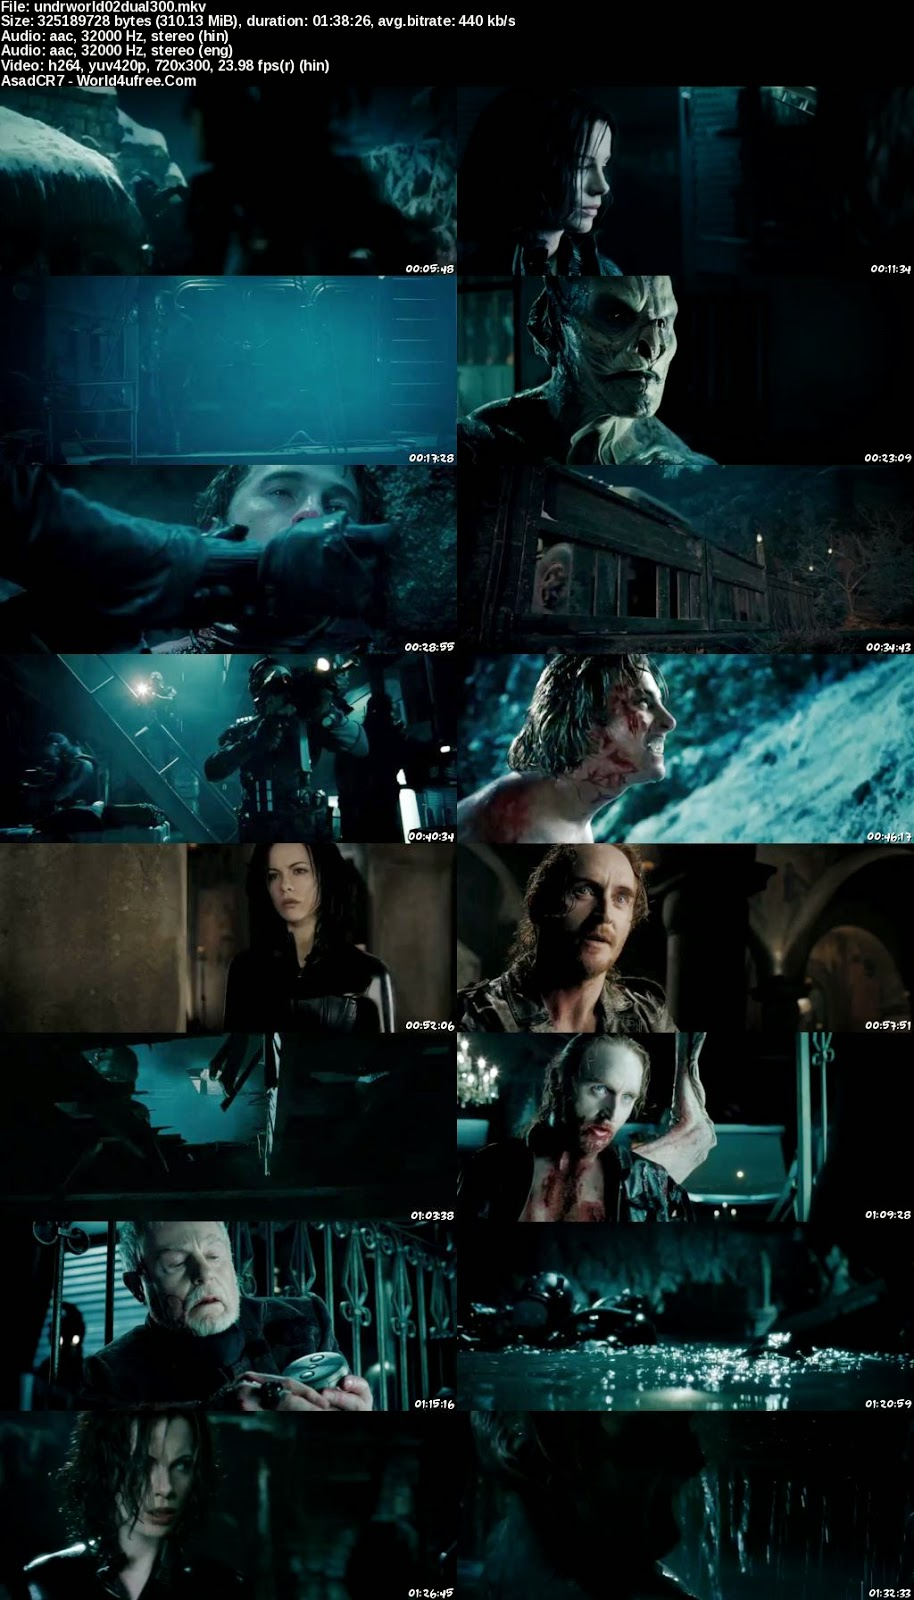 Underworld 2 Evolution 2006 [Hindi-Eng] Dual Audio 300mb BRRip 480p world4ufree.ws hollywood movie Underworld 2 Evolution 2006 hindi dubbed dual audio 480p brrip bluray compressed small size 300mb free download or watch online at world4ufree.ws